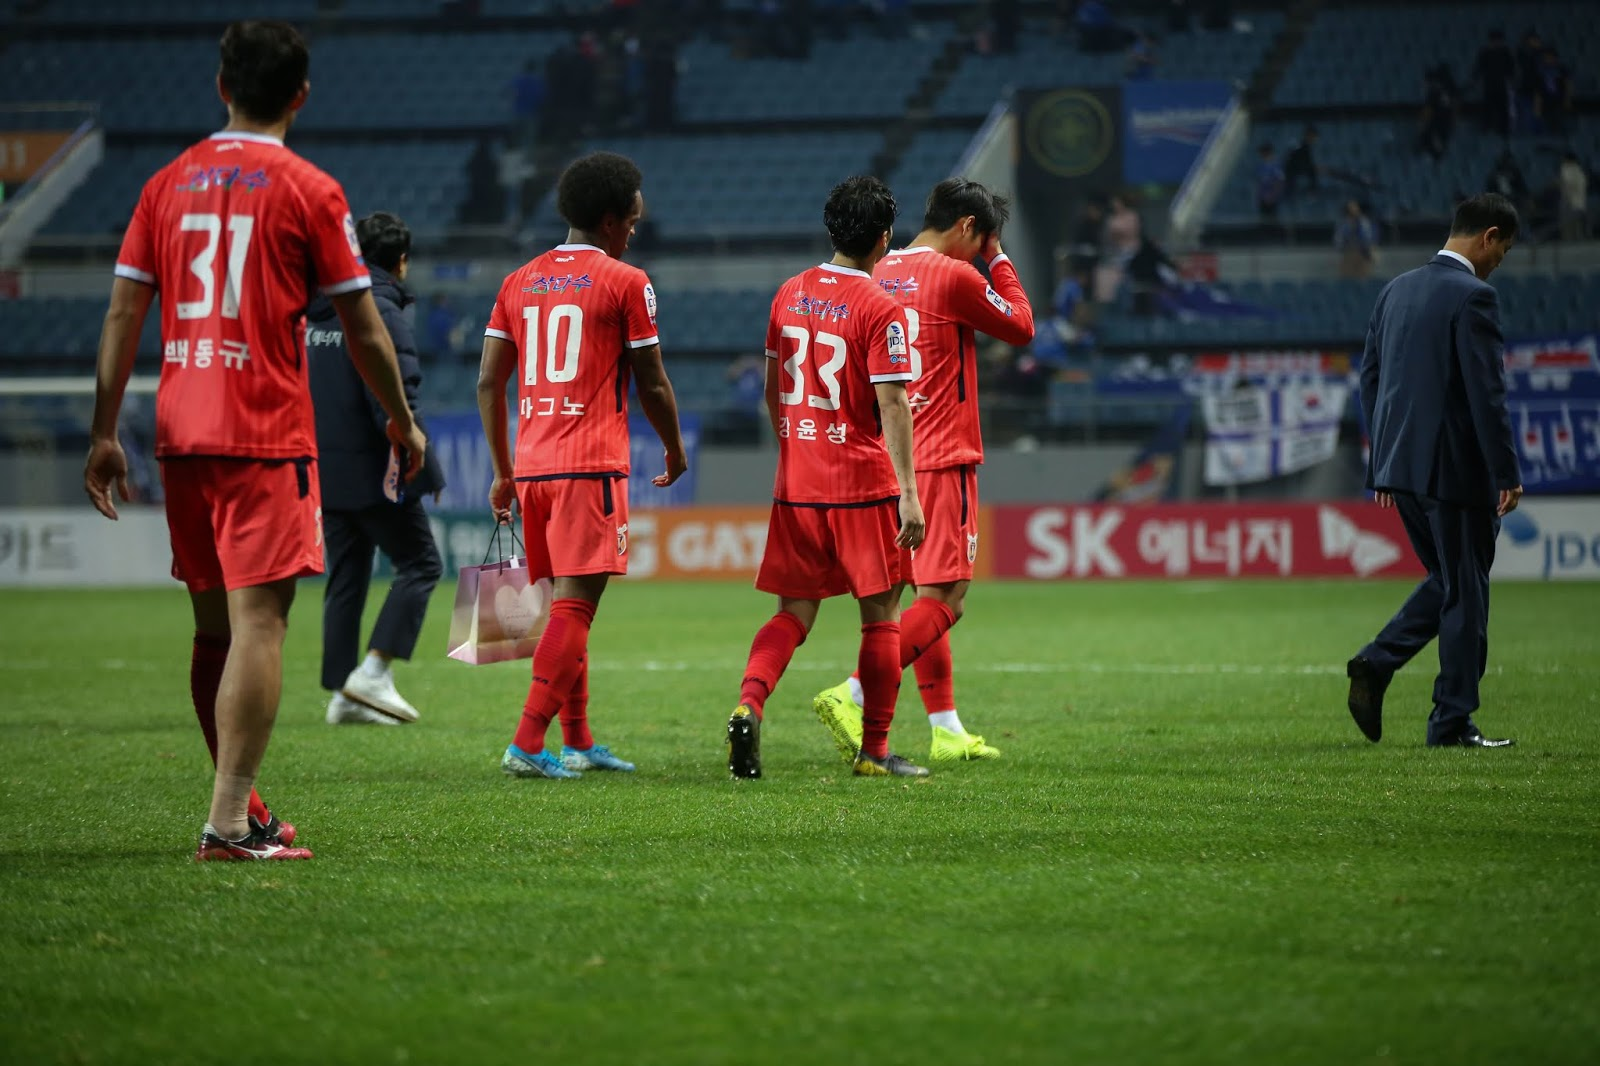 Relegation against Suwon 11.24.19